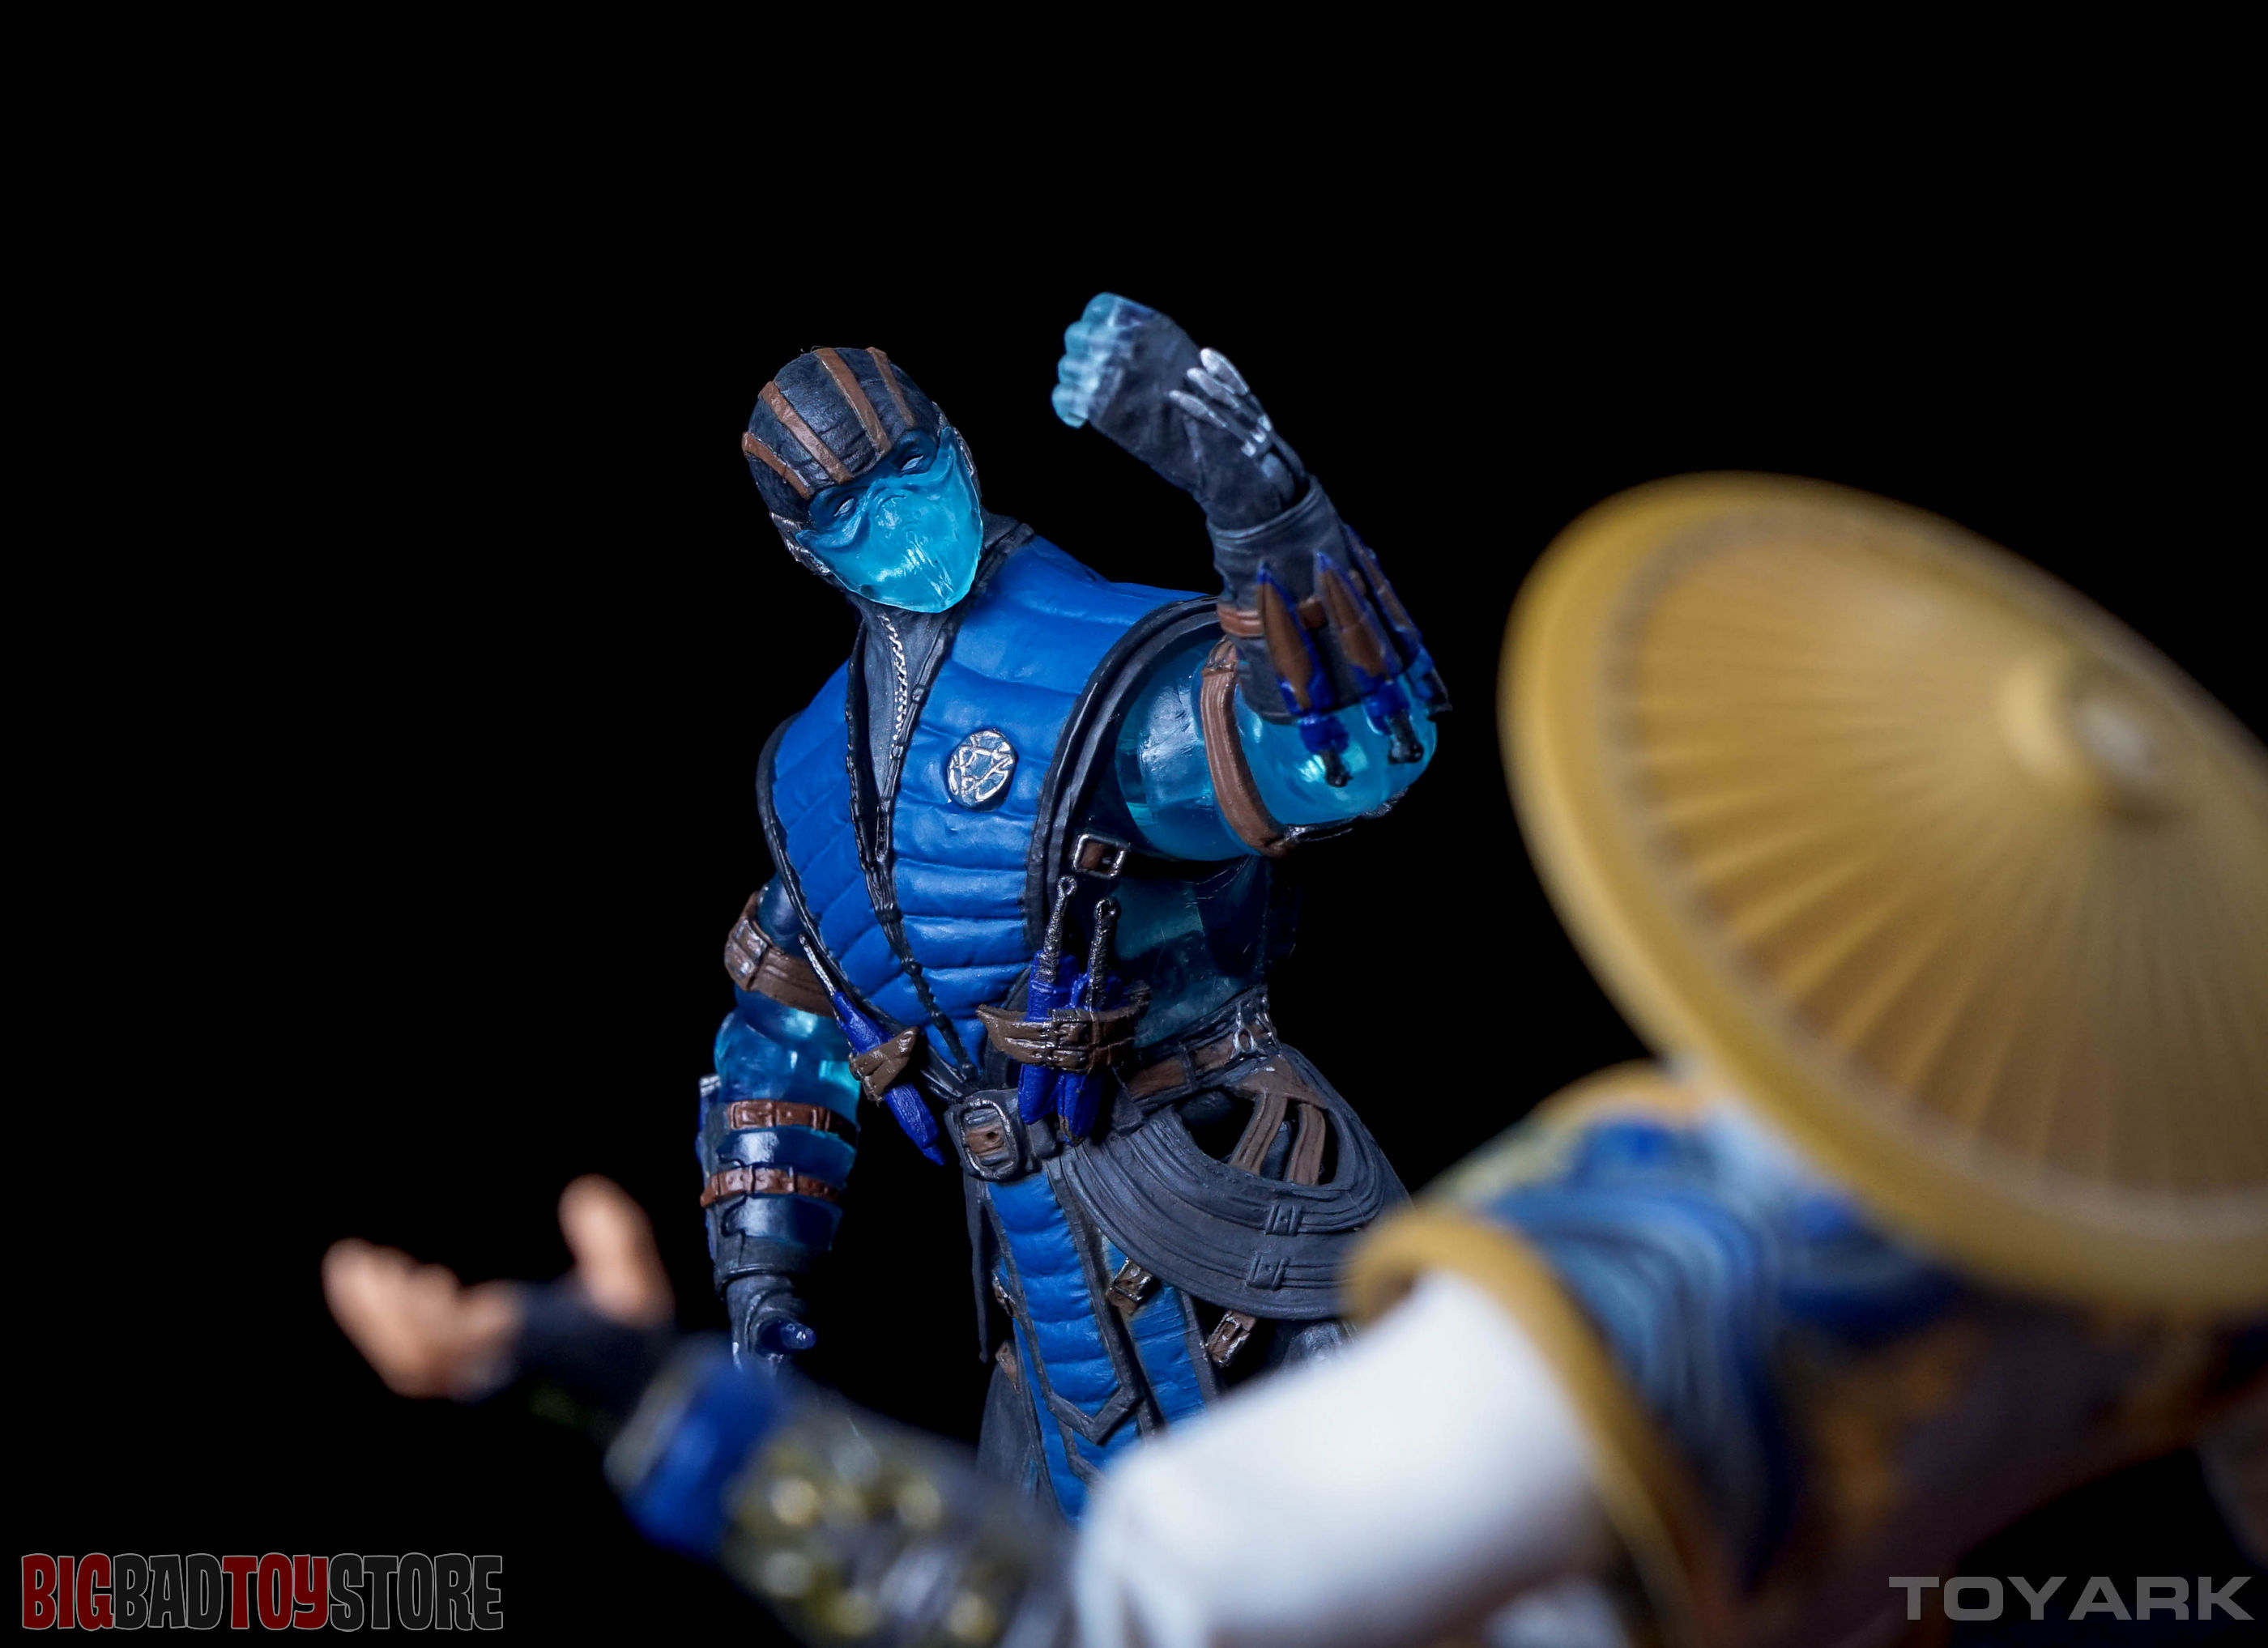 http://news.toyark.com/wp-content/uploads/sites/4/2015/10/Mezco-PX-Mortal-Kombat-X-055.jpg